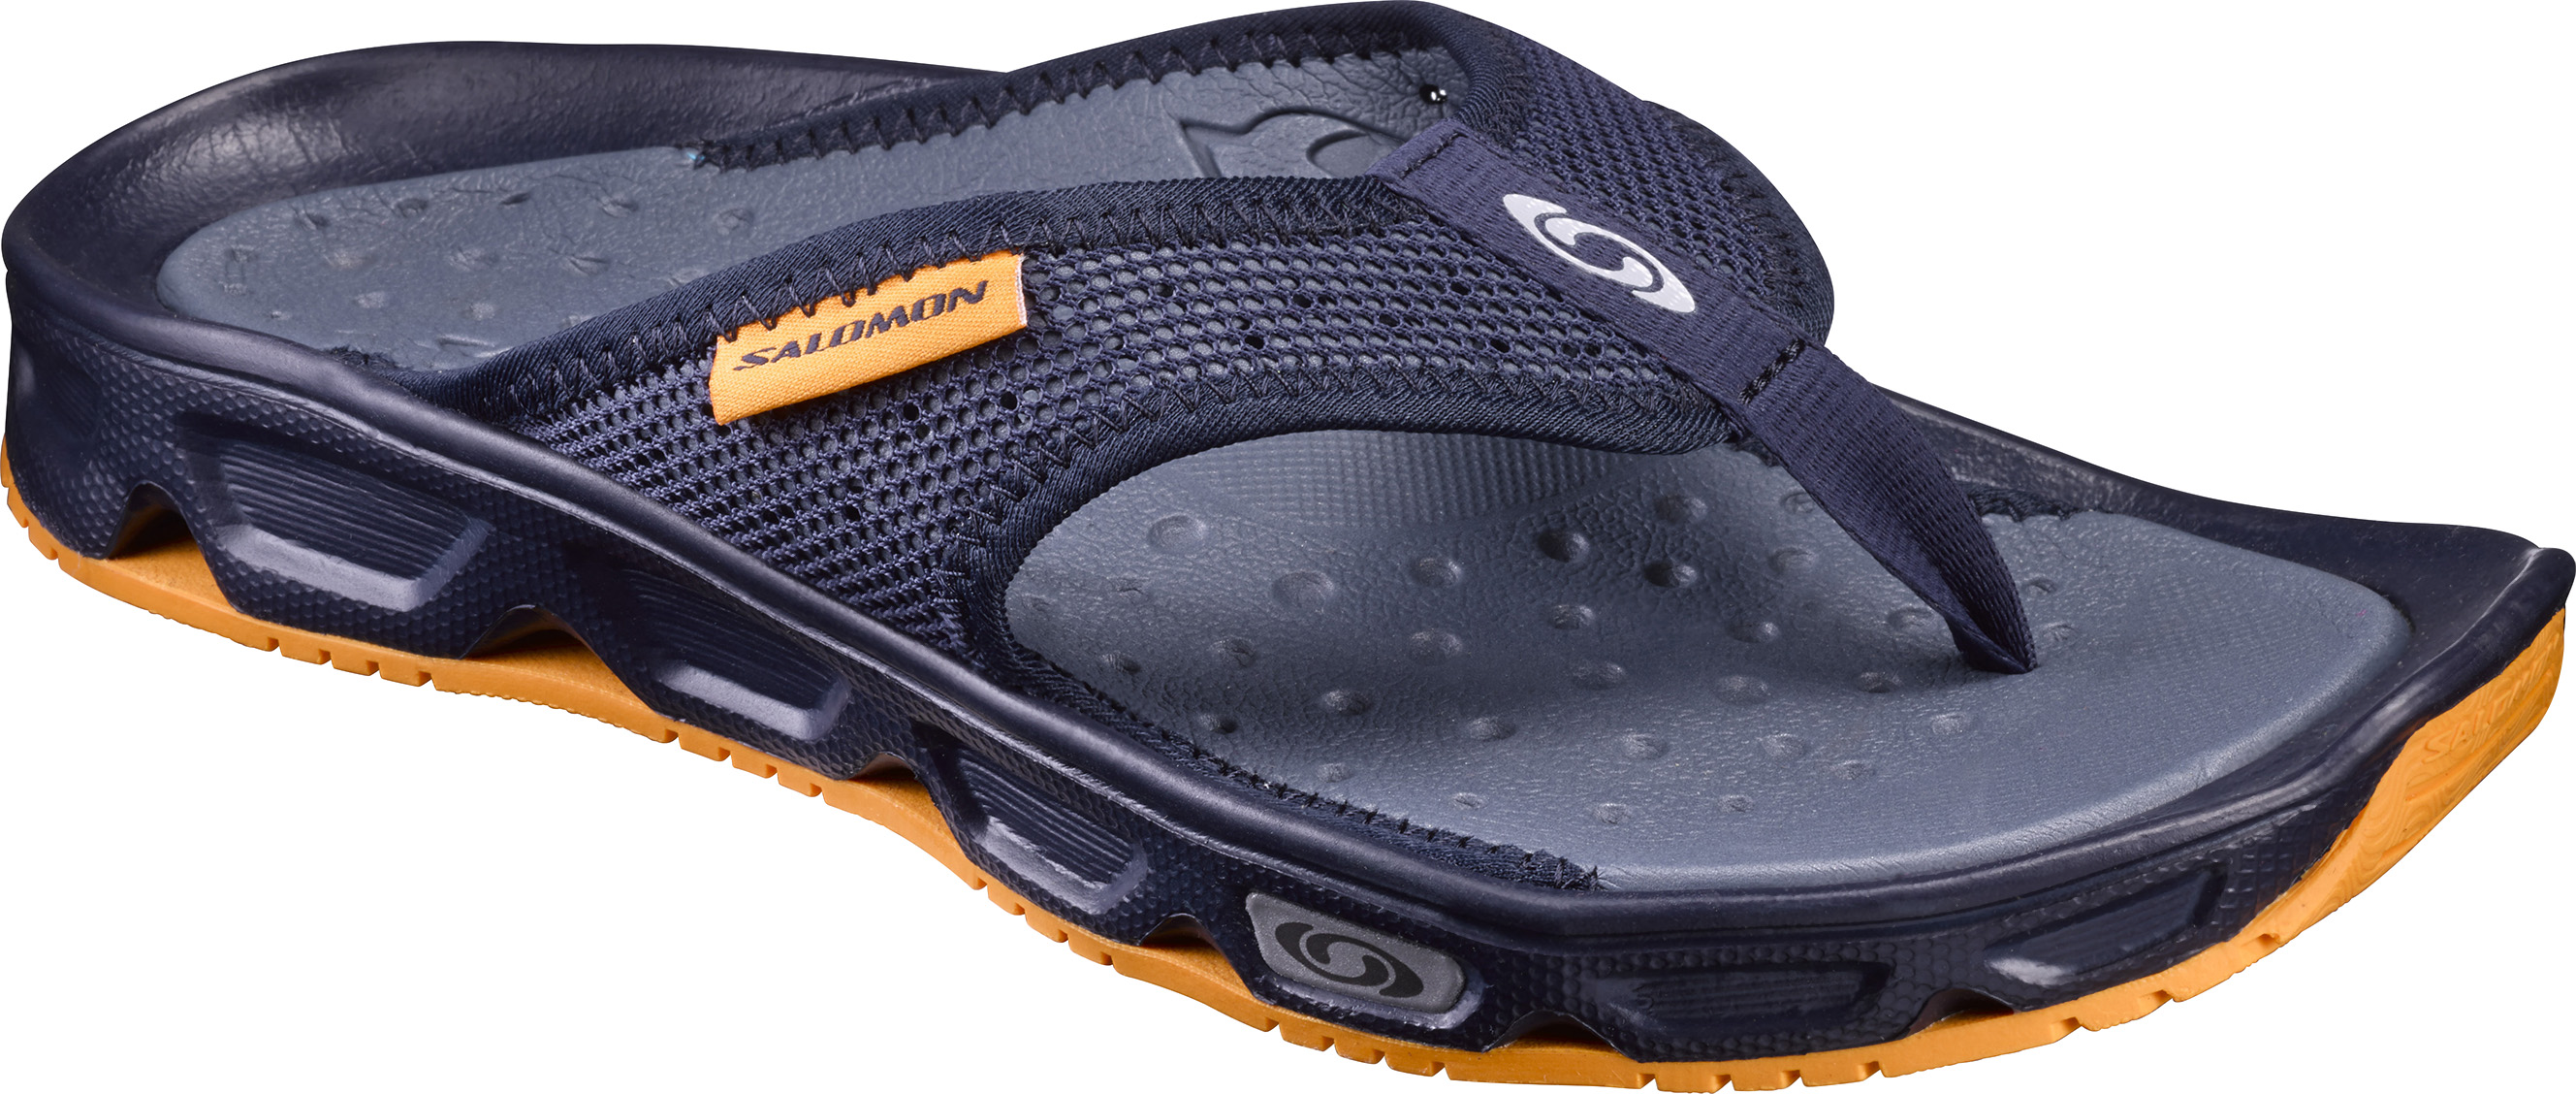 Salomon RX Break 392492 modrá 41,3